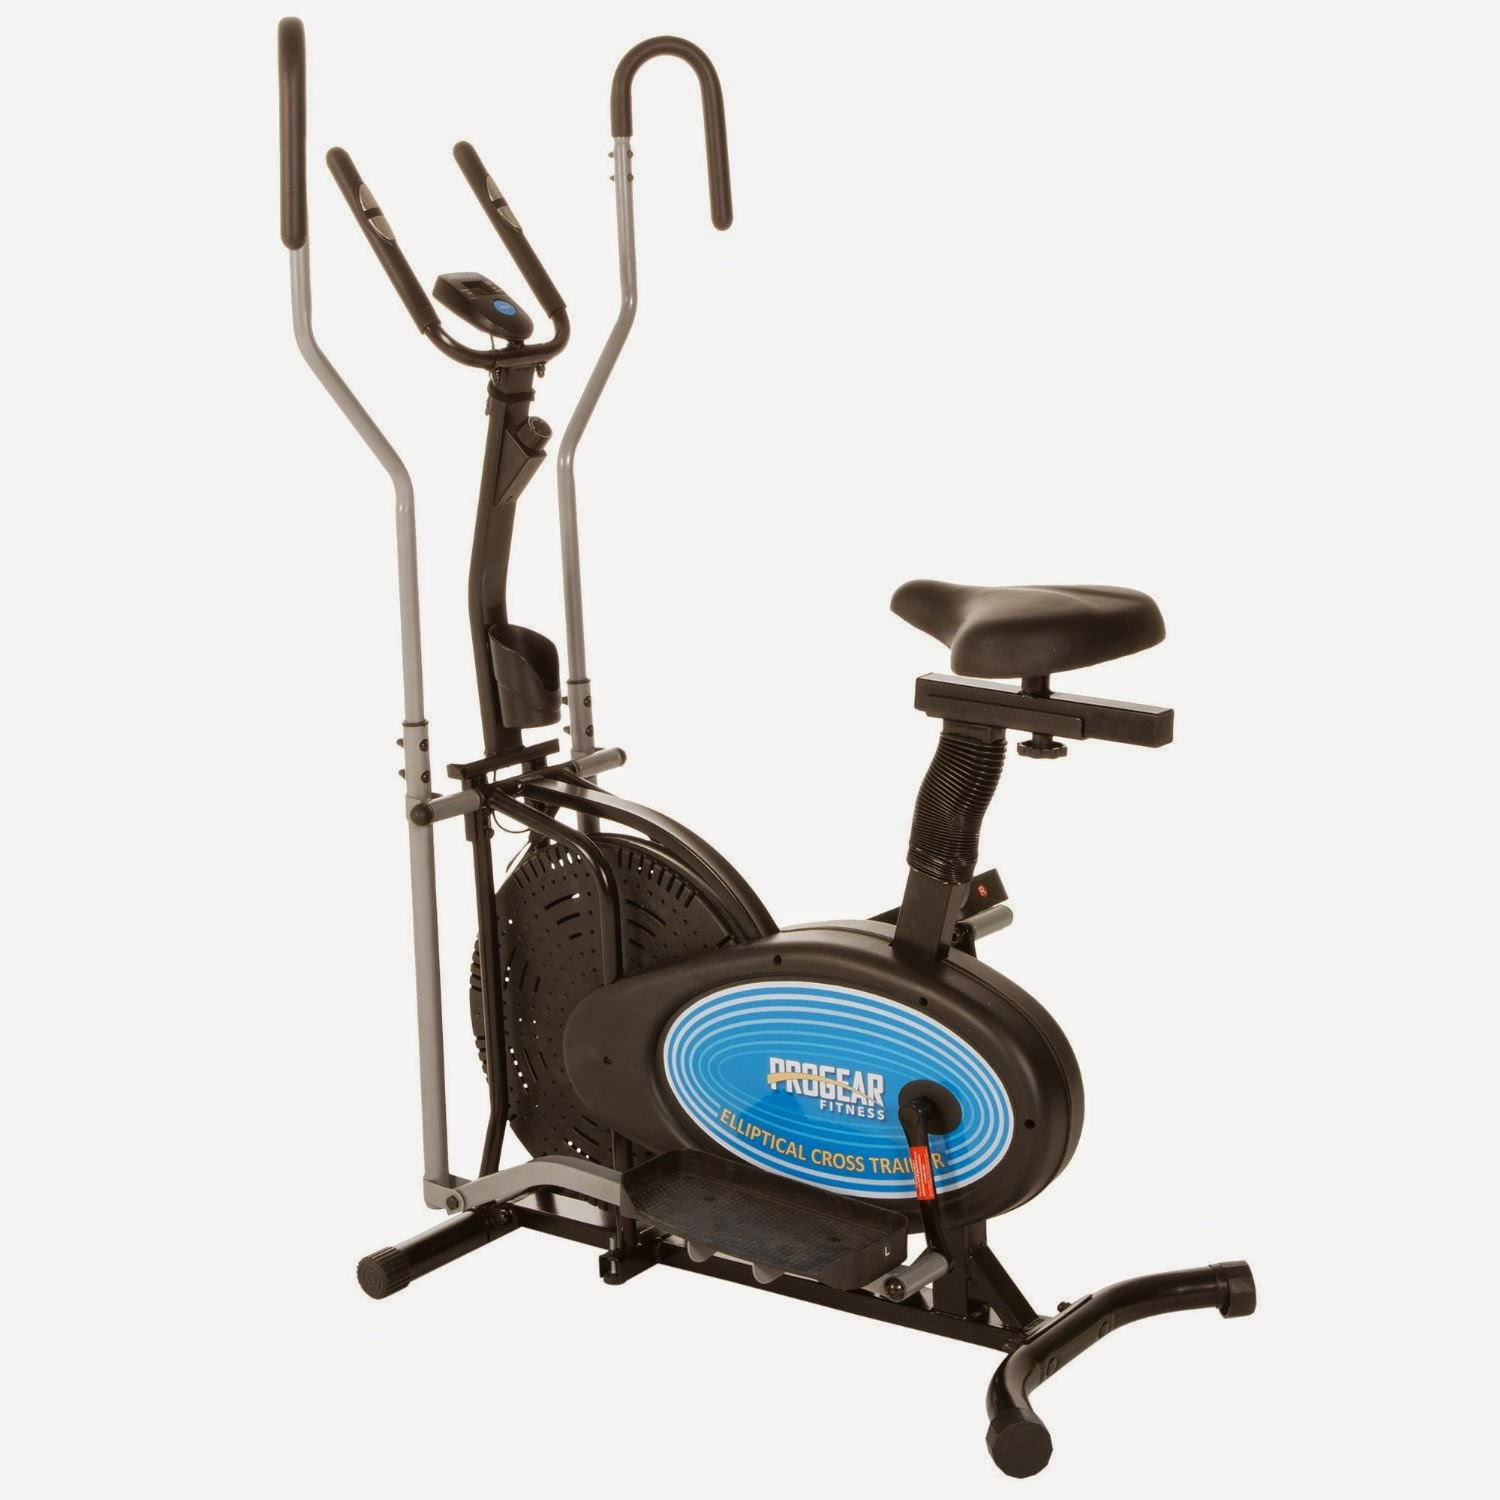 "ProGear 400LS 2 Dual Trainer Air Elliptical & Exercise Bike, review features, 2 machines in 1 for low price, 14"" stride length, backward stride capability, dual action workout arms, tension adjustment, 4 way adjustable seat"